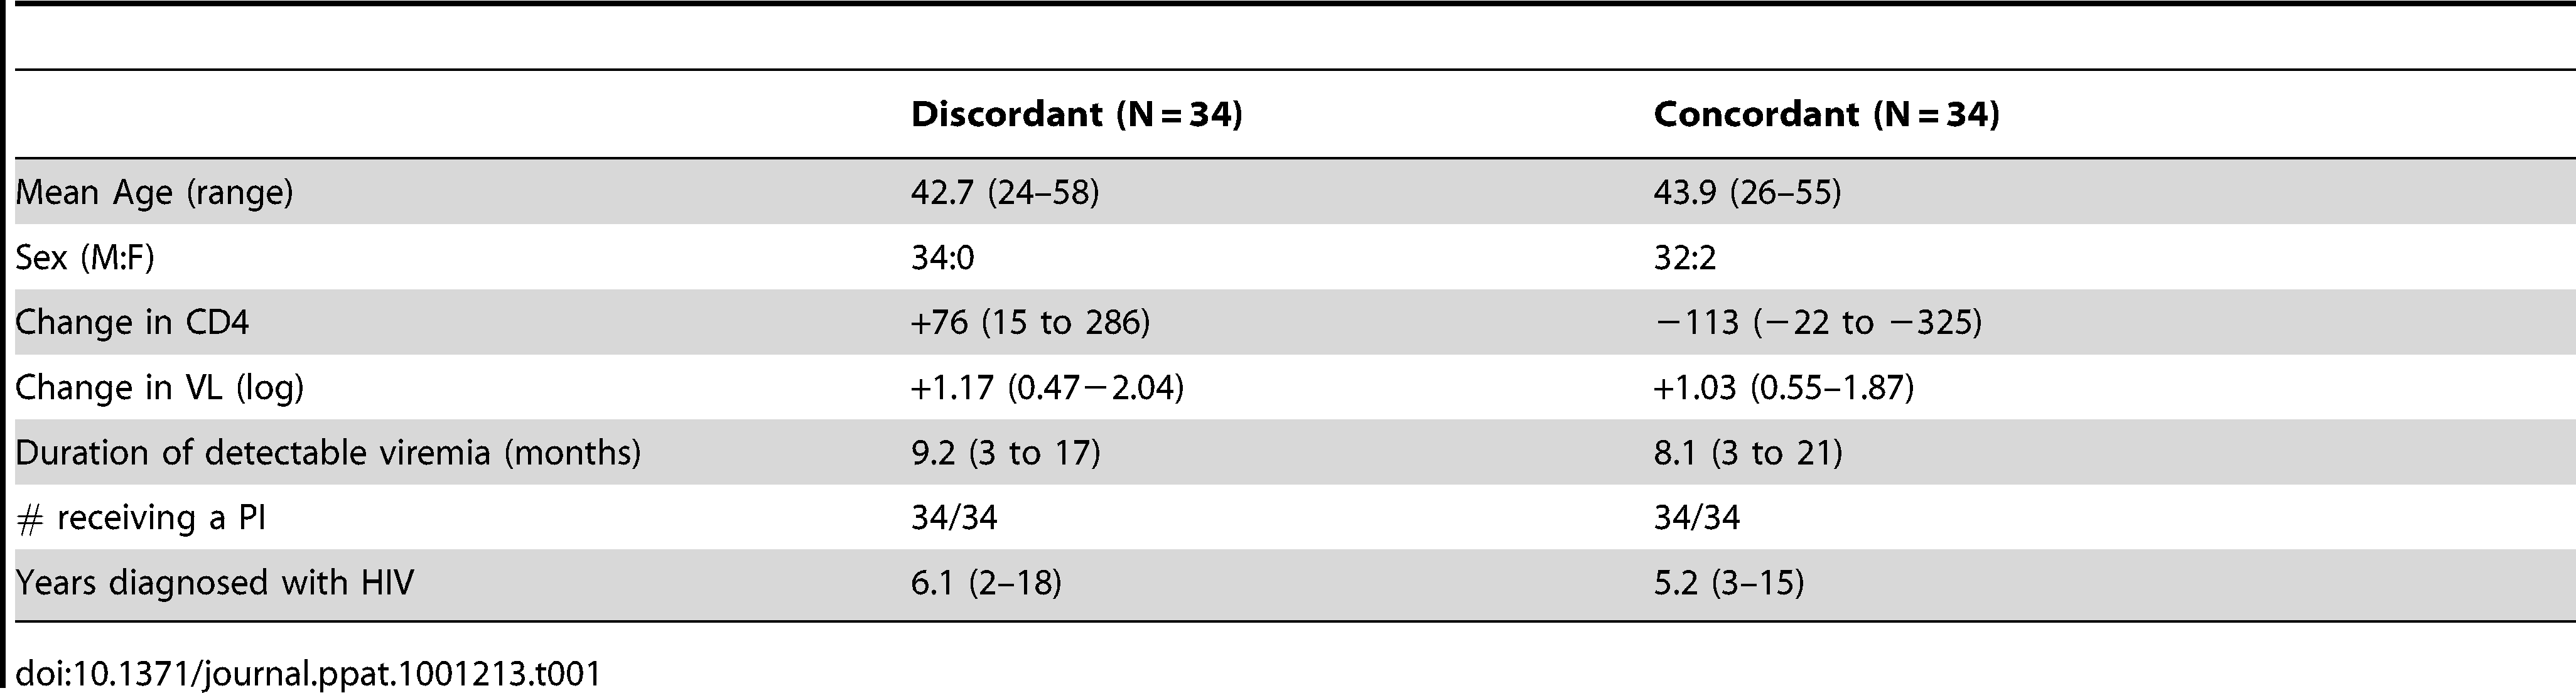 Demographics of discordant and concordant patients.